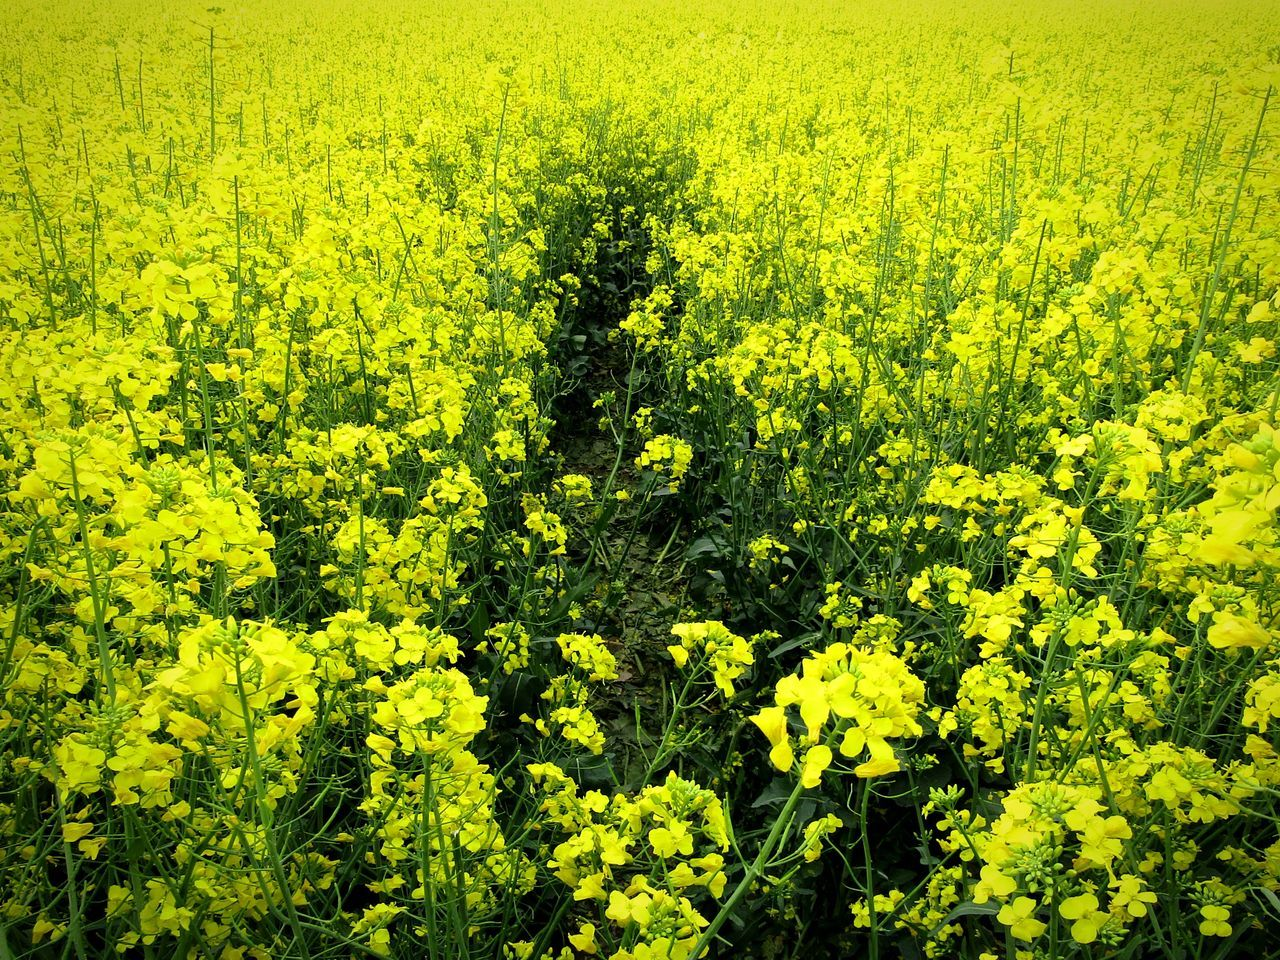 Way Myway Path Forehead Alone Field Yellow Yellowflower Beauty In Nature No People Close-up EyEmNature Nature On Your Doorstep From My Point Of View Capture The Moment Naturephotography Eyemnaturelover Todayphotography Flowerphotography Freshness Outdoors Nature Sunny Entrance